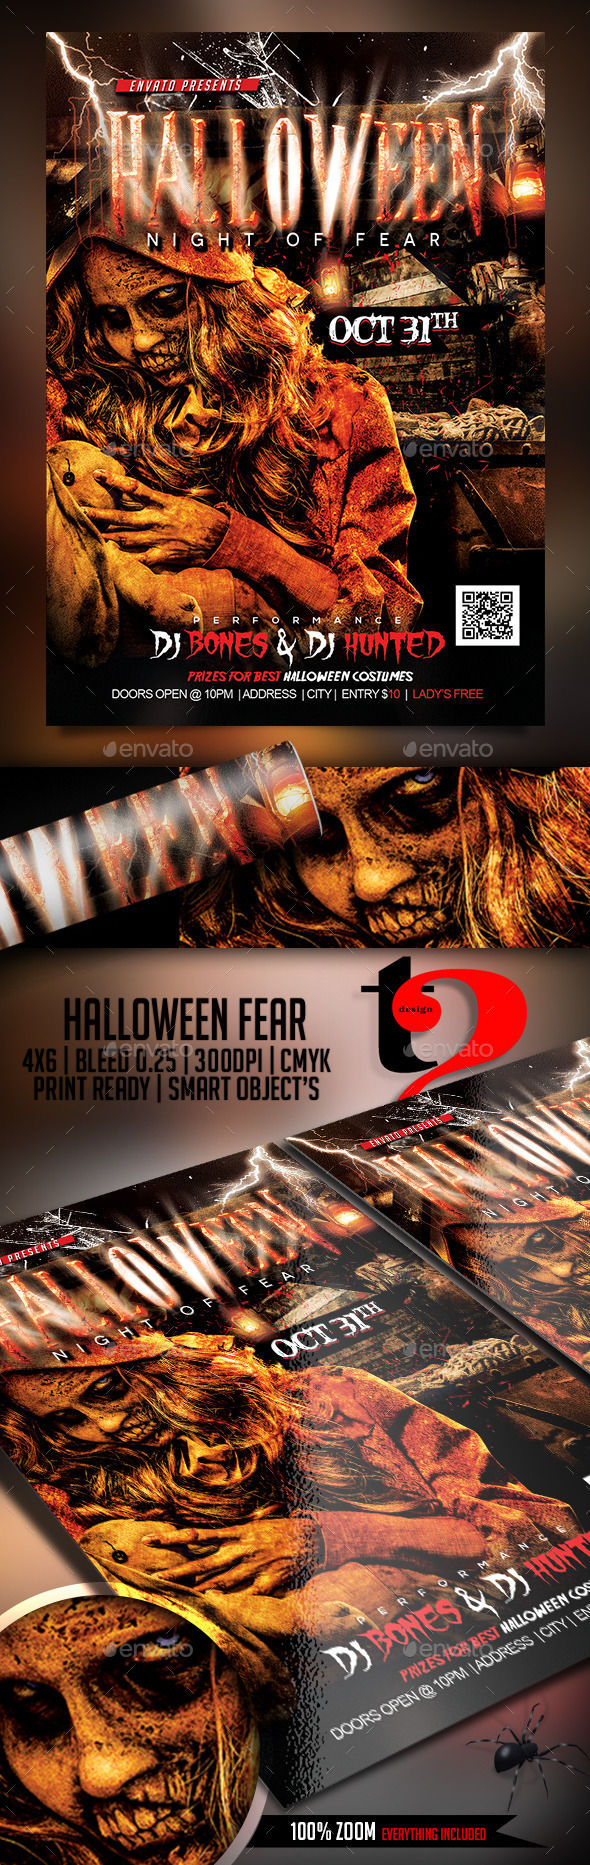 Halloween Flyer by Take2Design (Halloween party flyer)